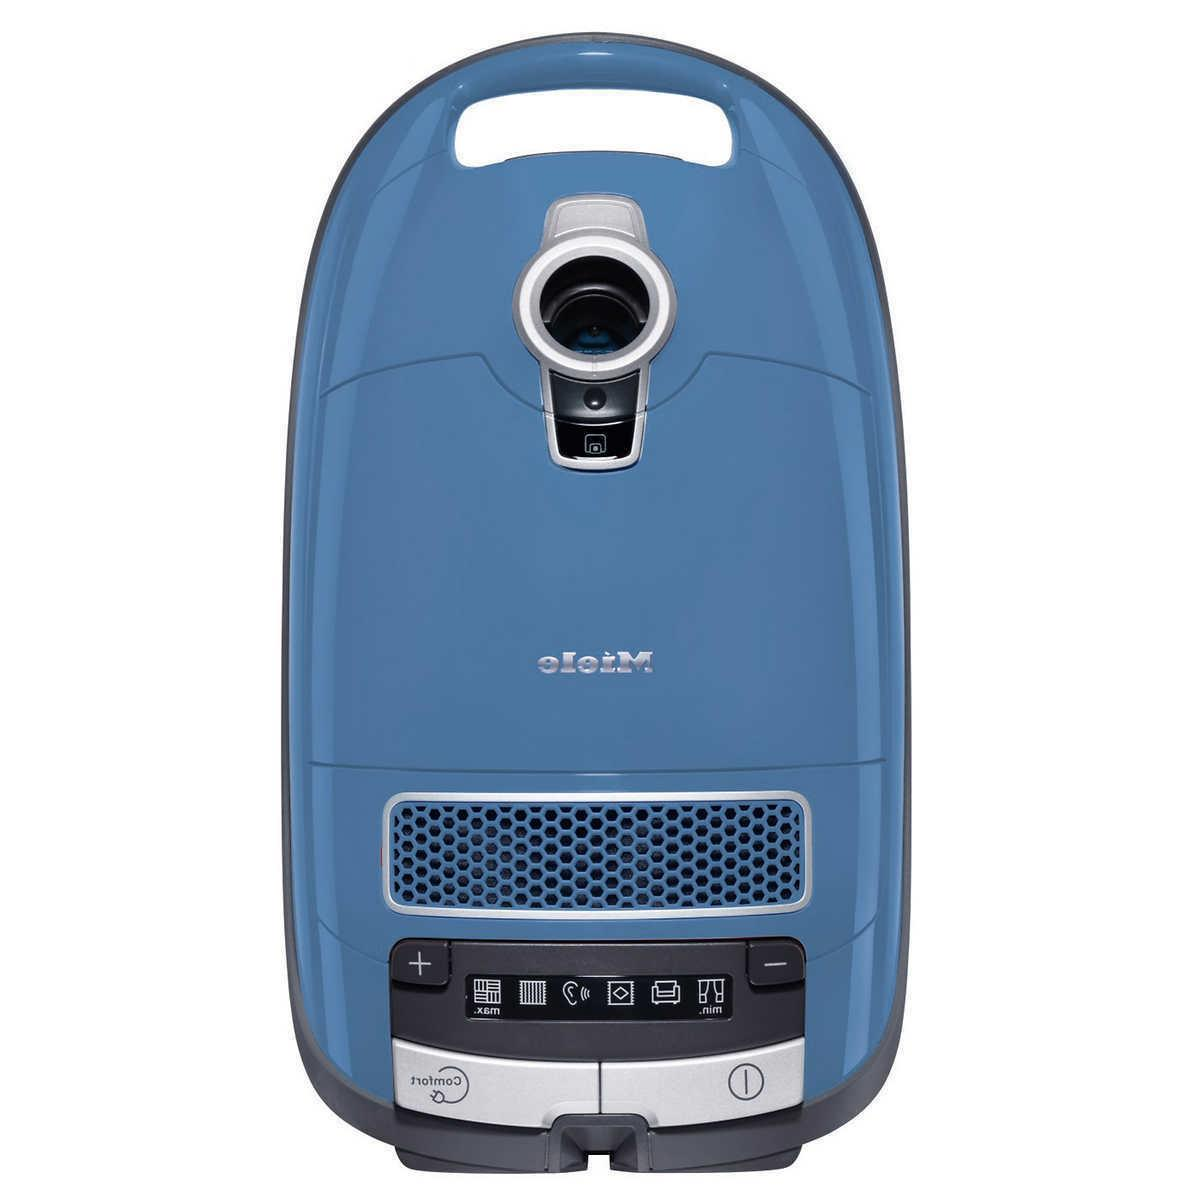 Miele Canister Vacuum Blue Color + New